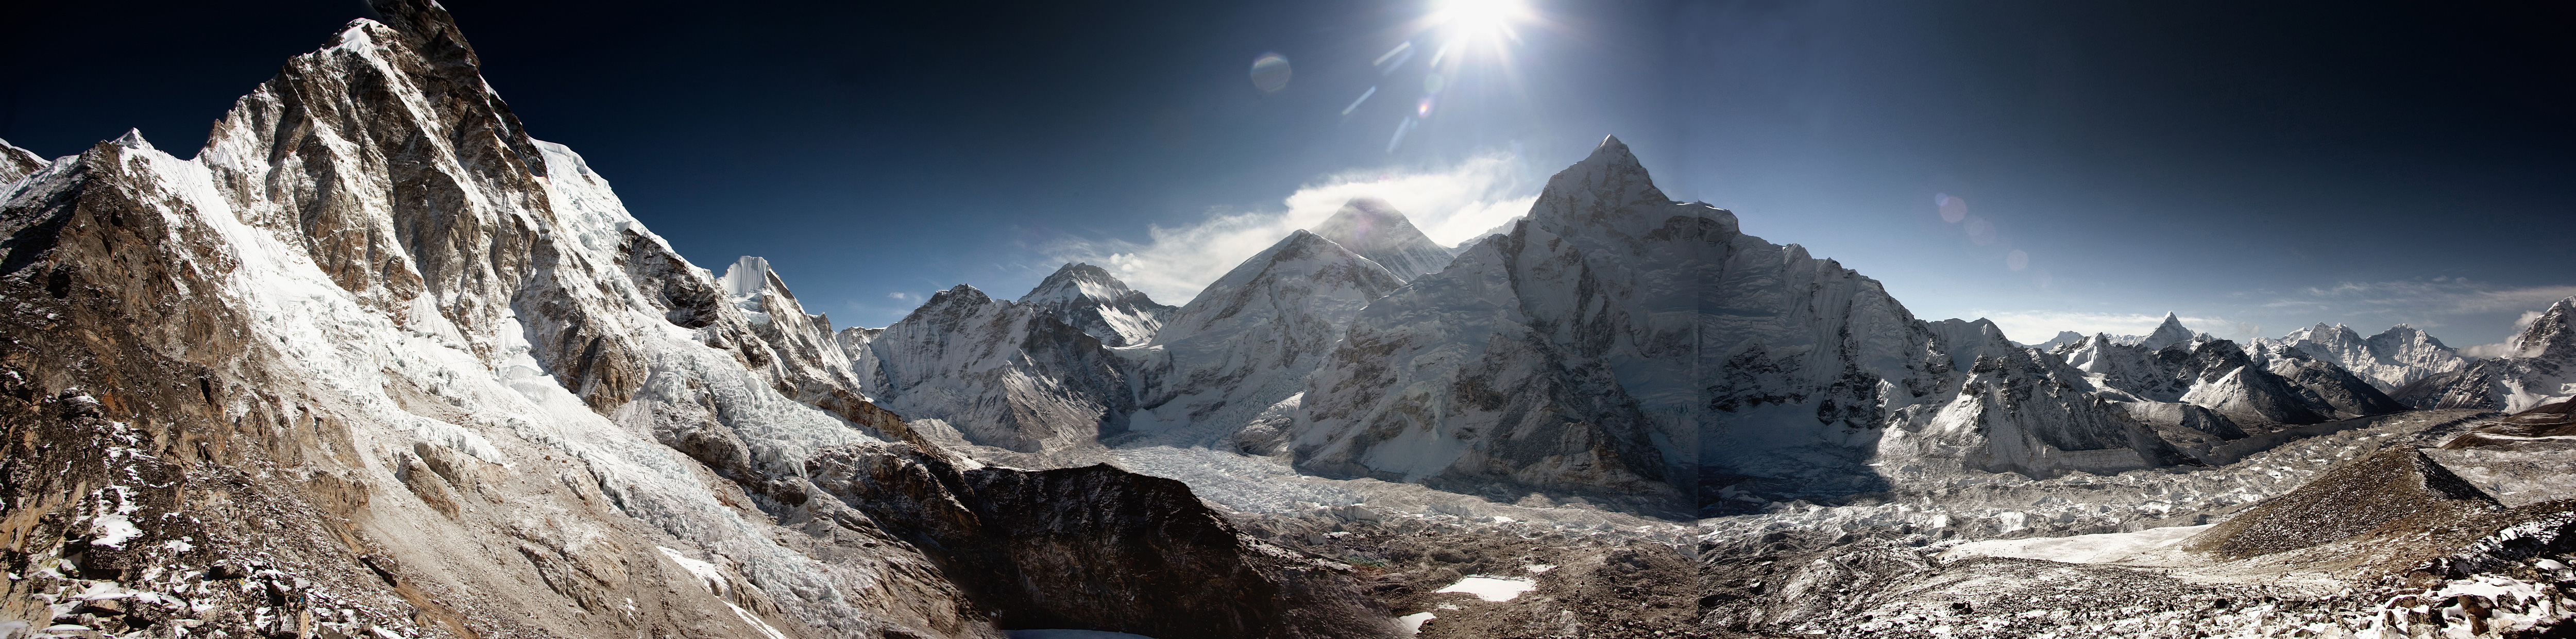 Everest and Khumbu icefall panorama from Kala Pathar